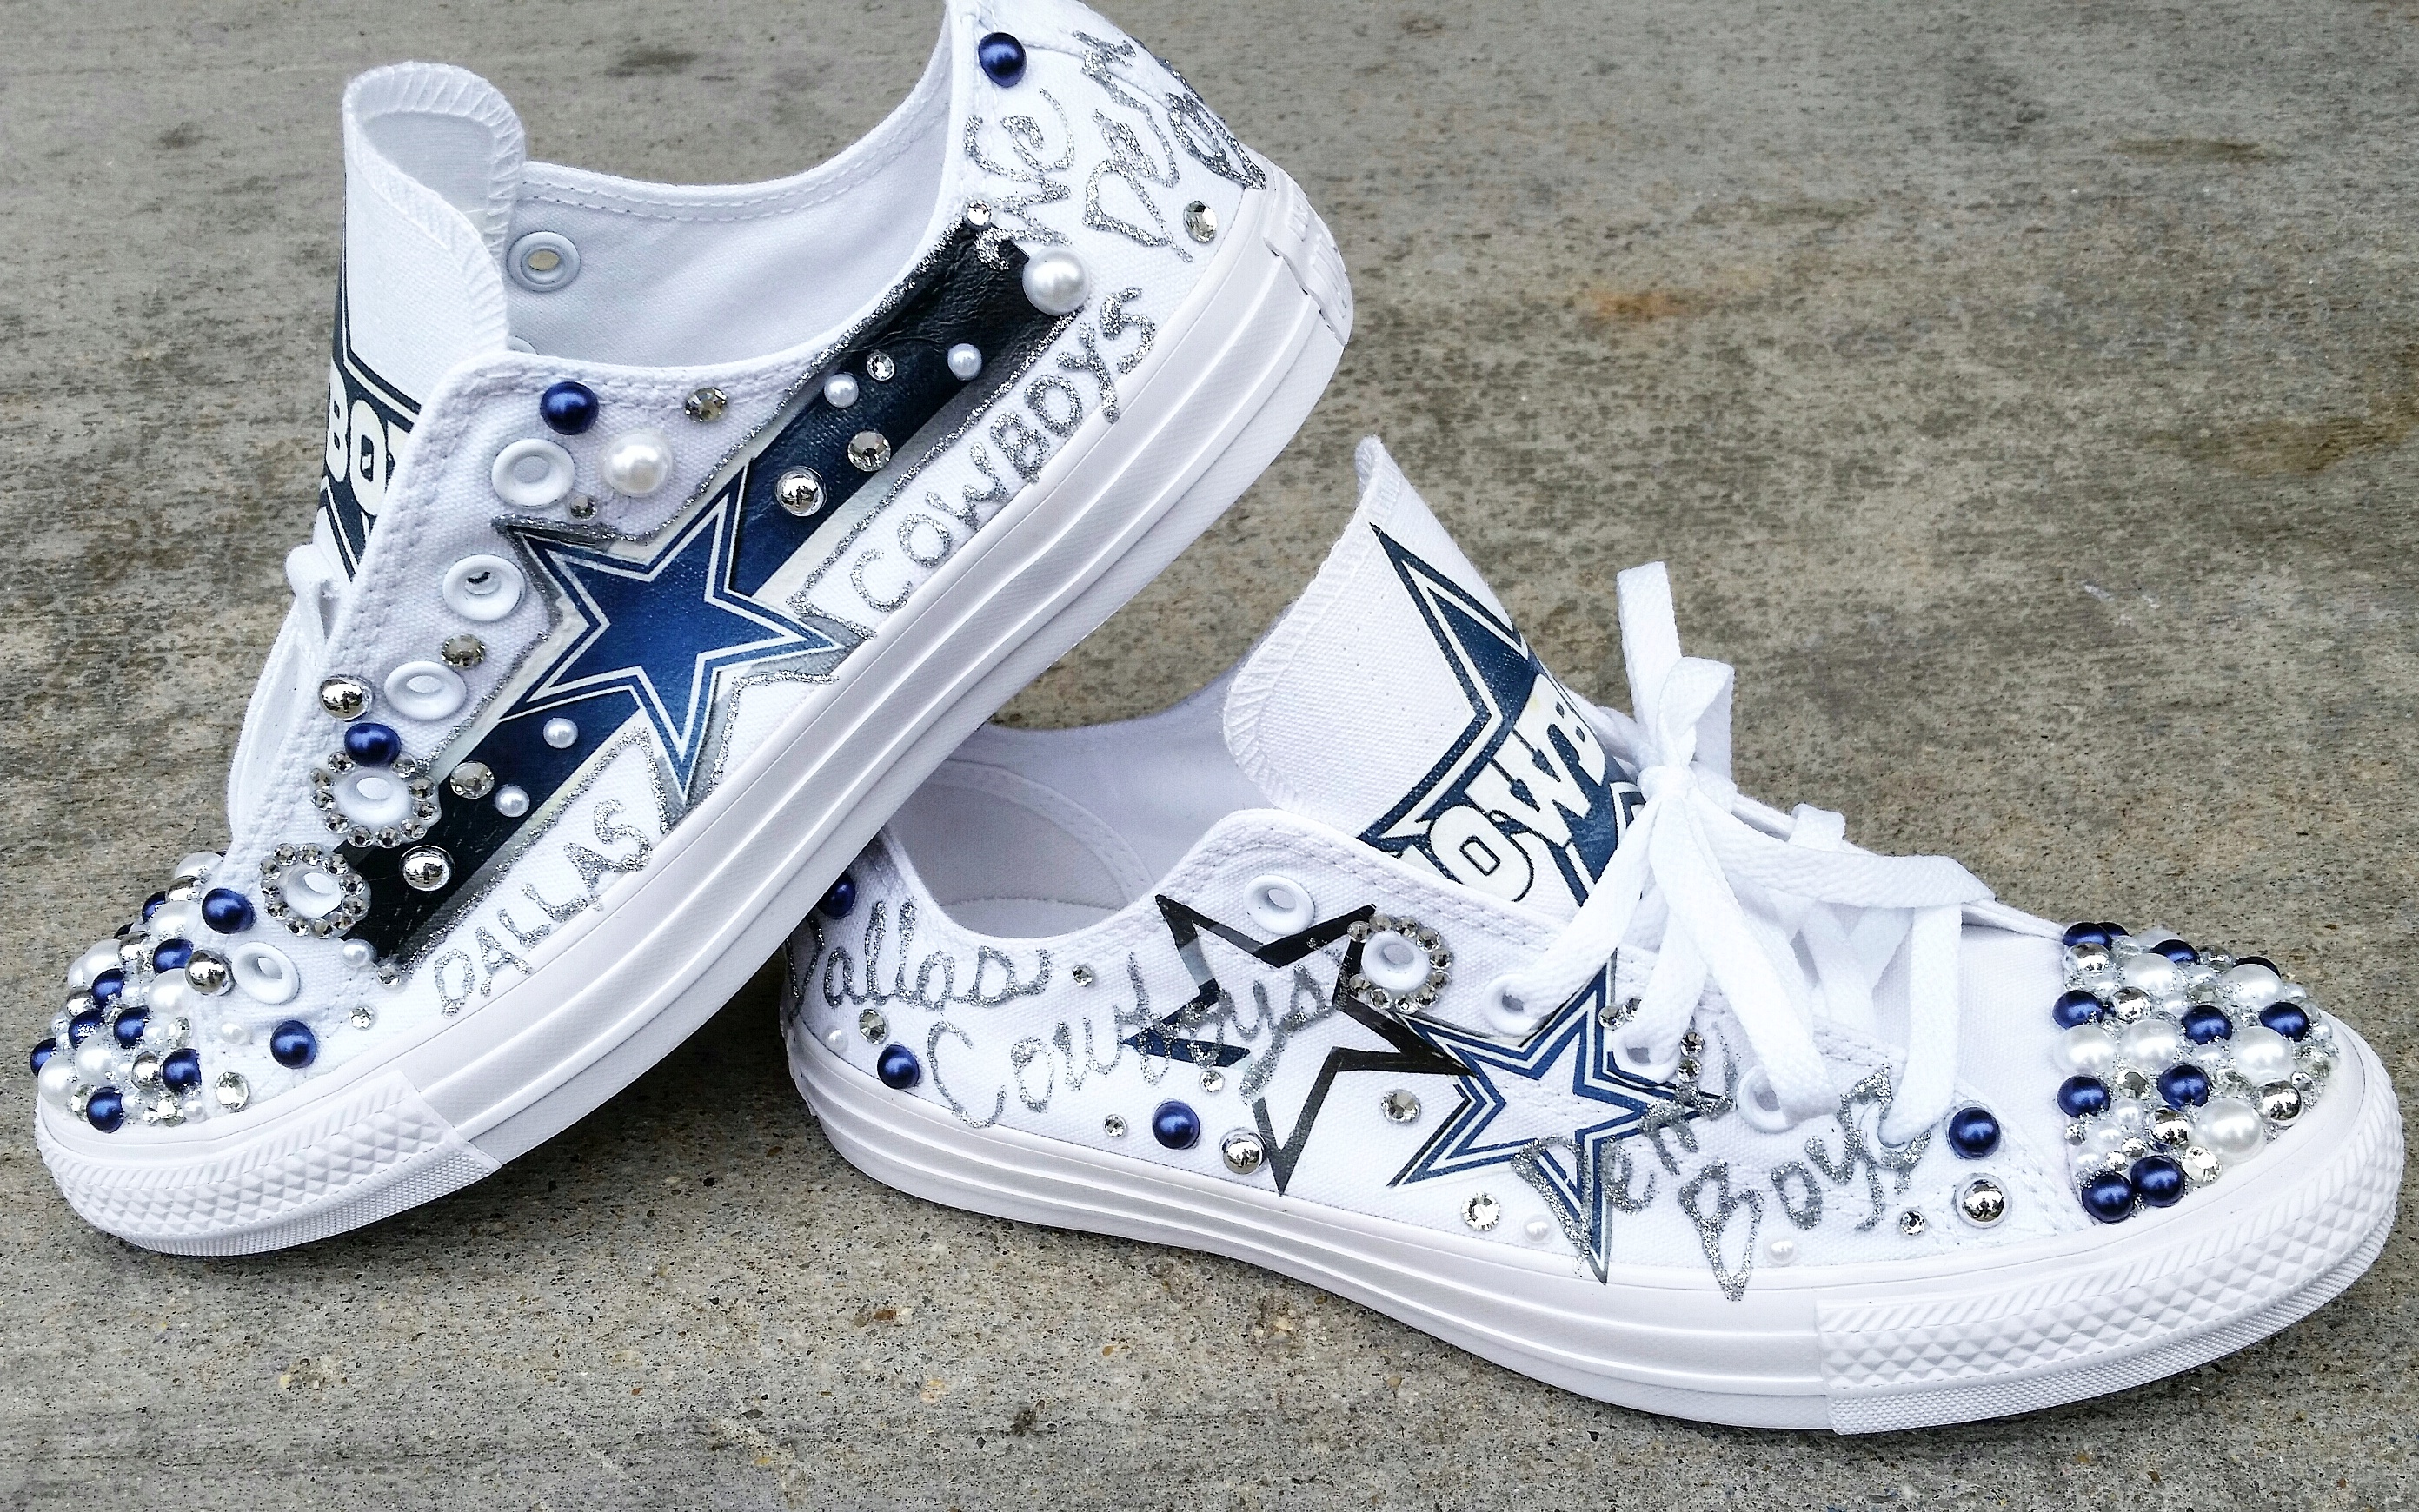 73e69c35191702 ... ireland custom low top dallas cowboys converse thumbnail 1 1d7d3 366ee